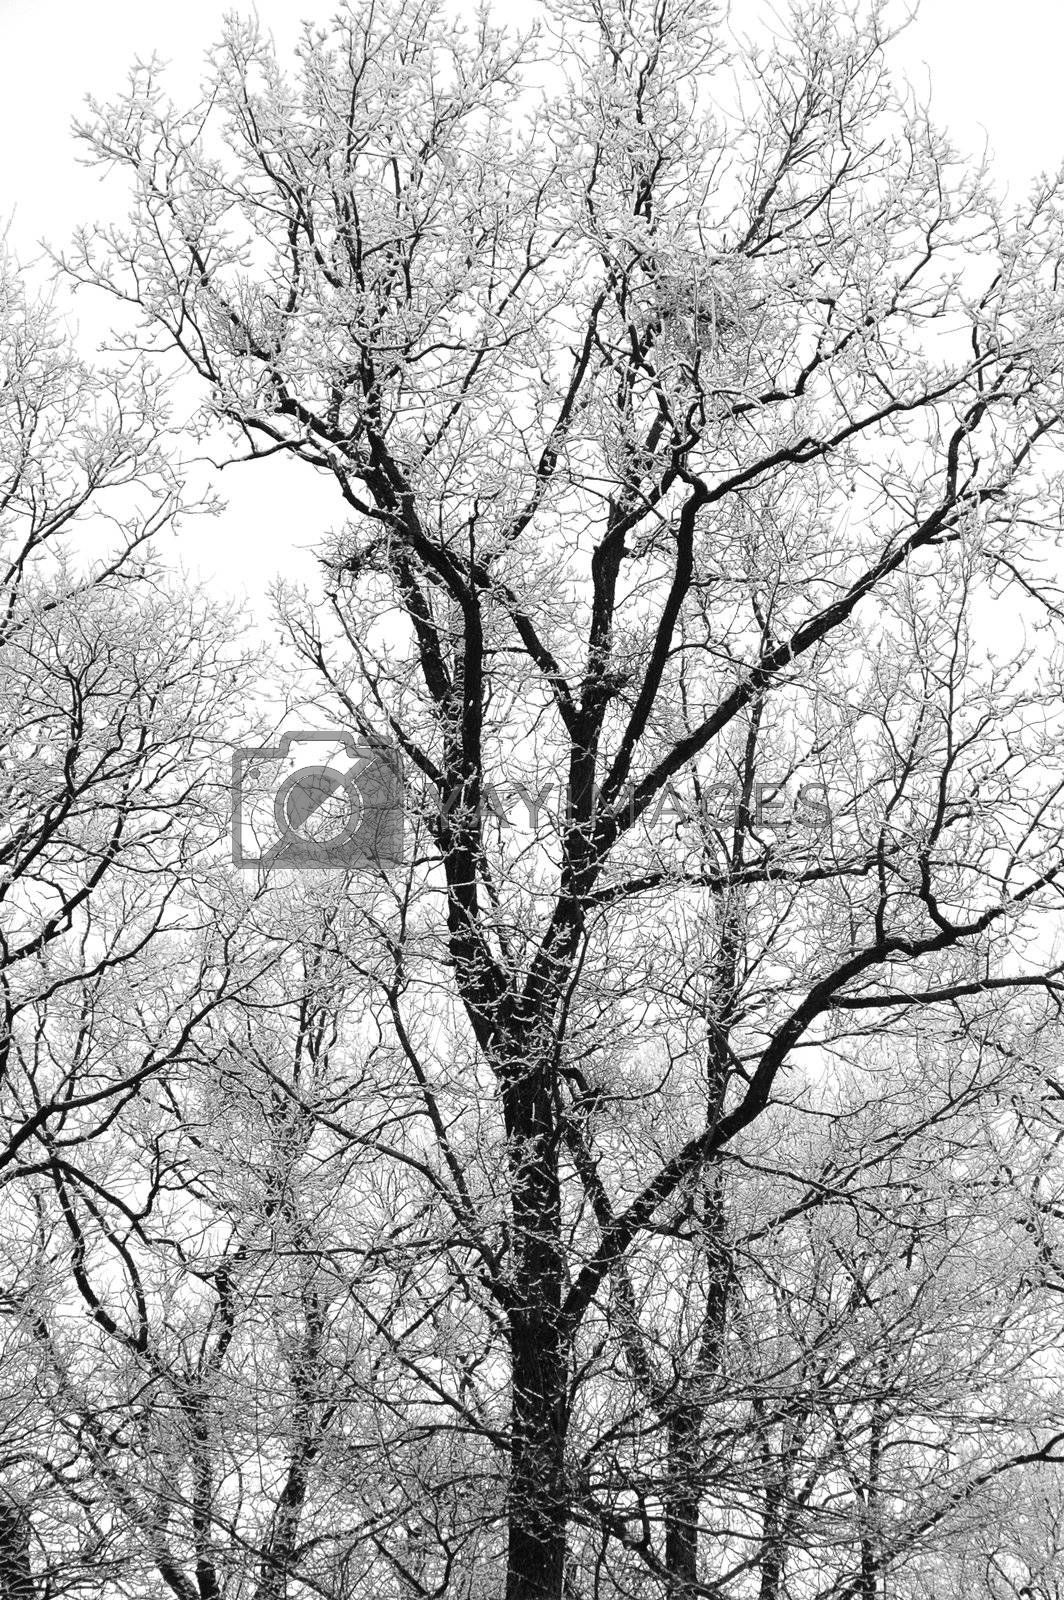 Trees covered in snow on a cloudy winter day